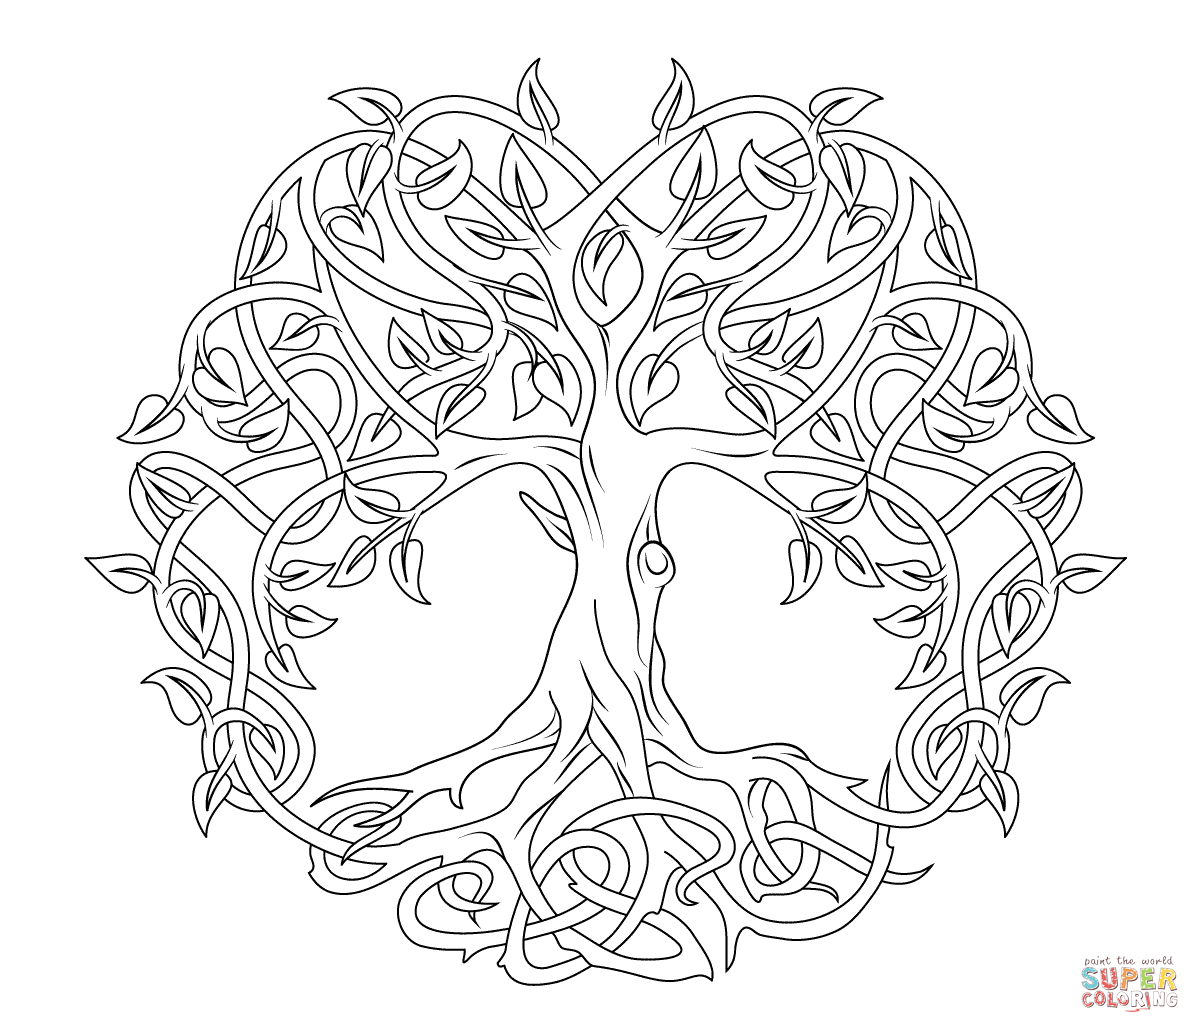 1200x1033 Exploit Irish Colouring Pages Rare Coloring I